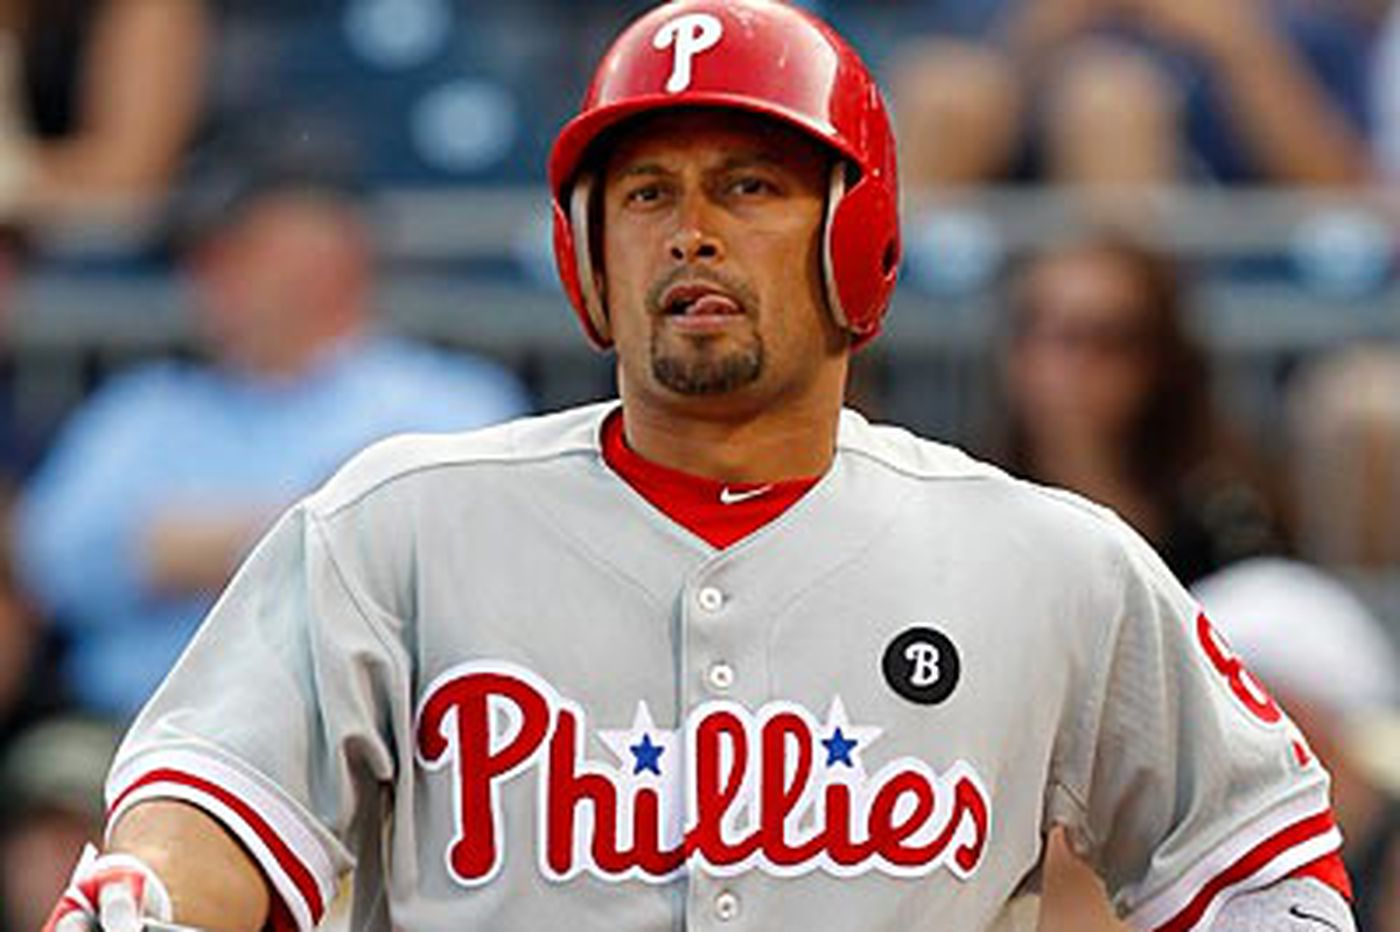 Phillies Notes: Victorino called up, Mayberry sent down